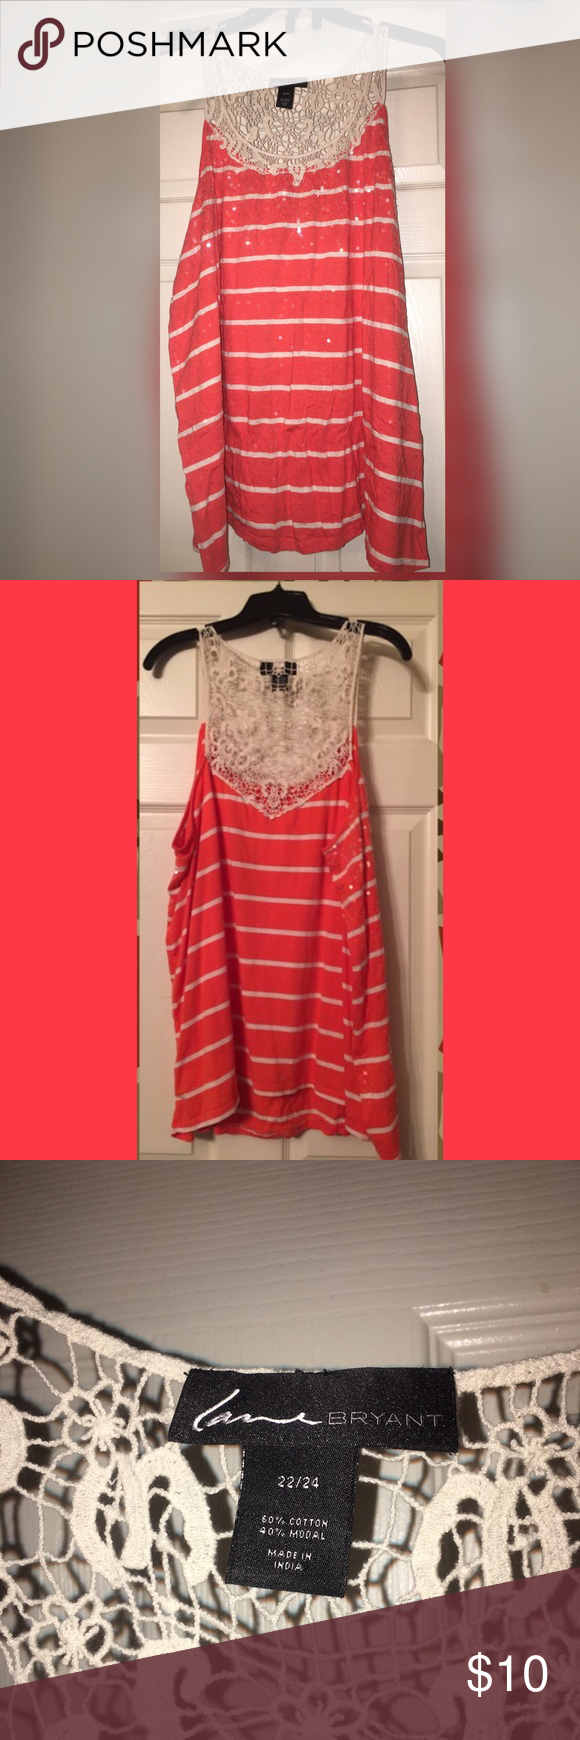 Coral striped tank with crochet back Coral striped tank with crochet back purchased from Lane Bryant. Size 22/24; Tank has clear sequin embellishments on front. ‼️ Product has never been worn and does not have any damage, however it has been washed. ‼️ Lane Bryant Tops Tank Tops